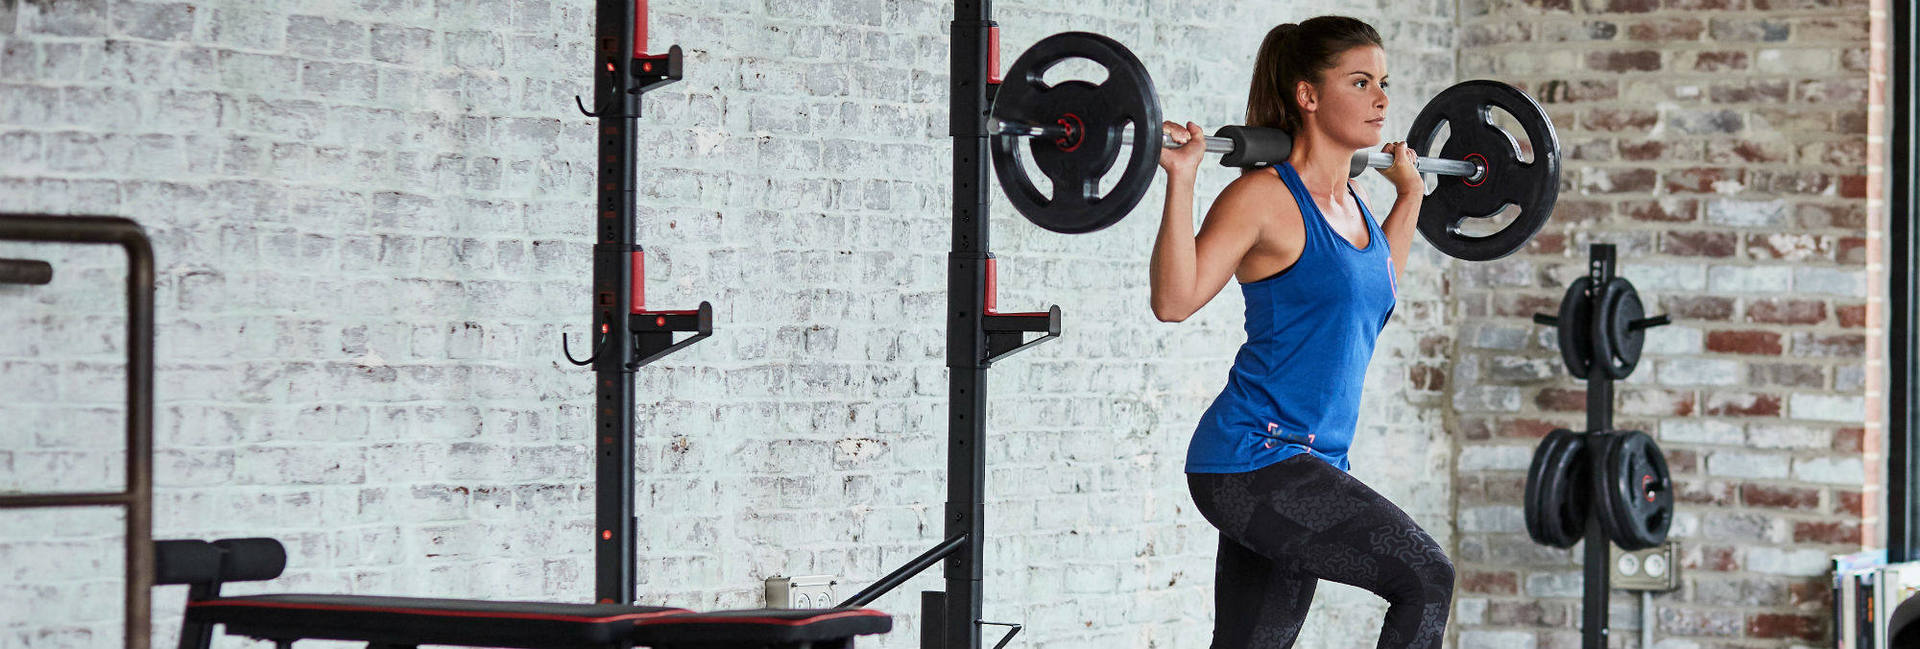 How Can You Build Up Your Glutes?